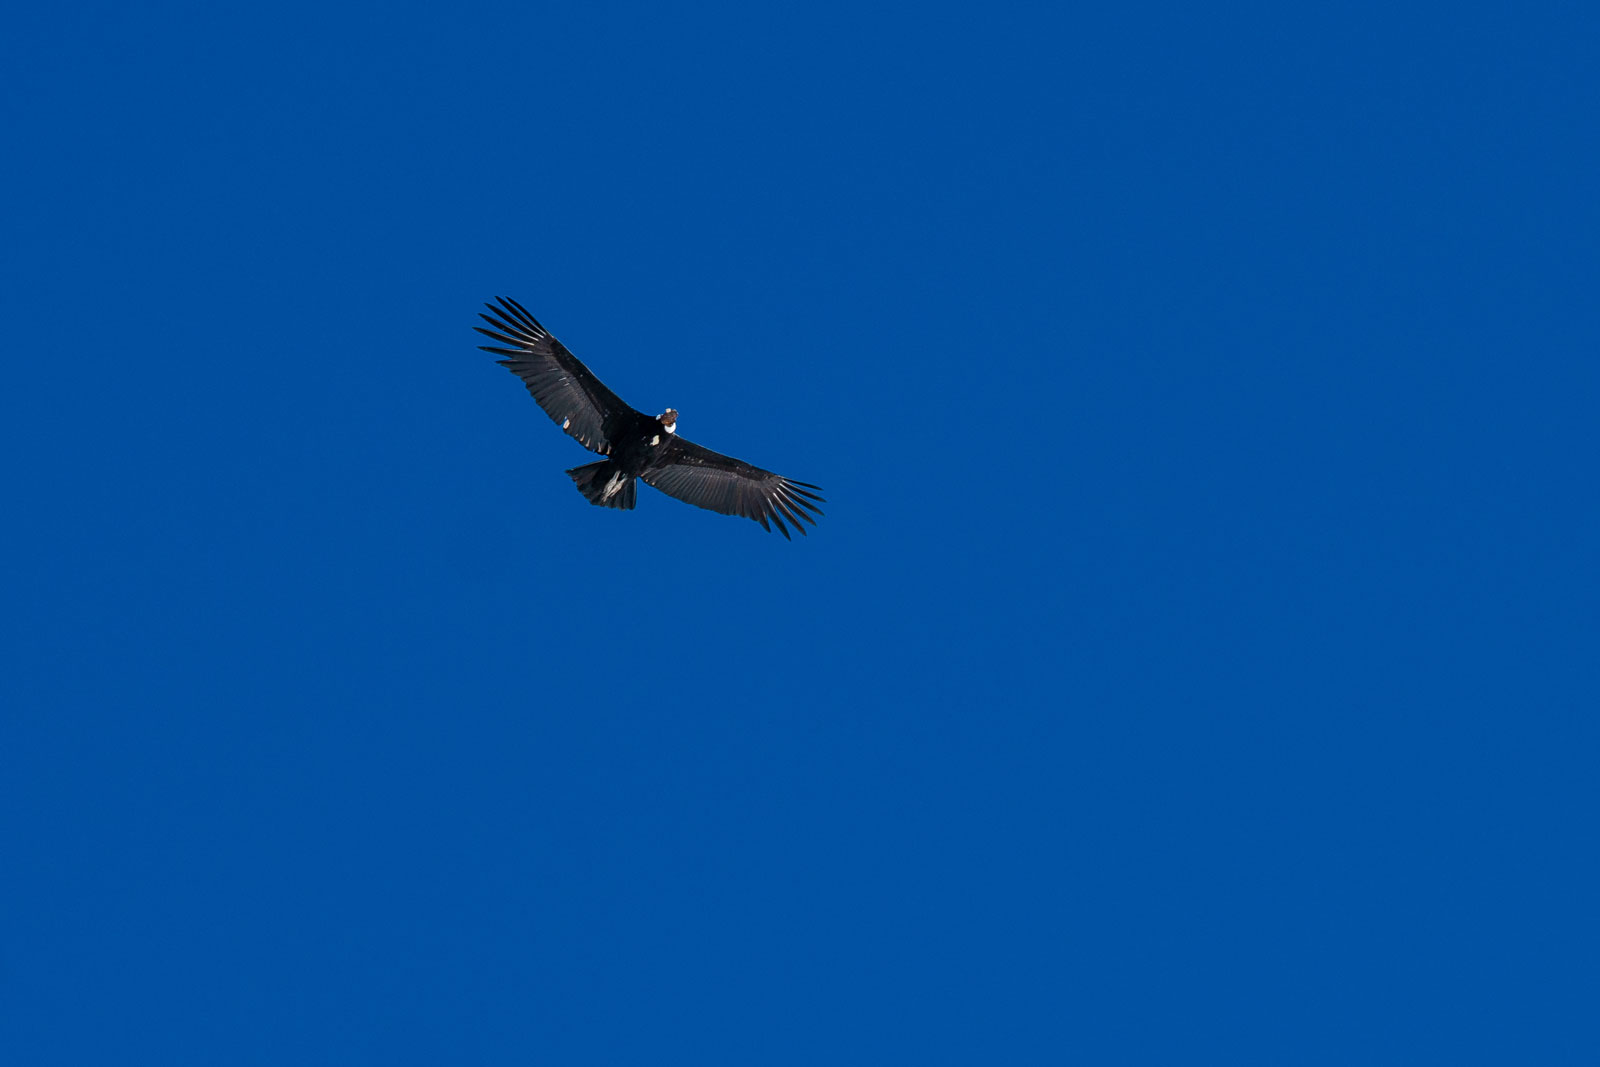 Condor doing a fly by. Photo Courtesy: Ben Girardi- Adventure in Argentina